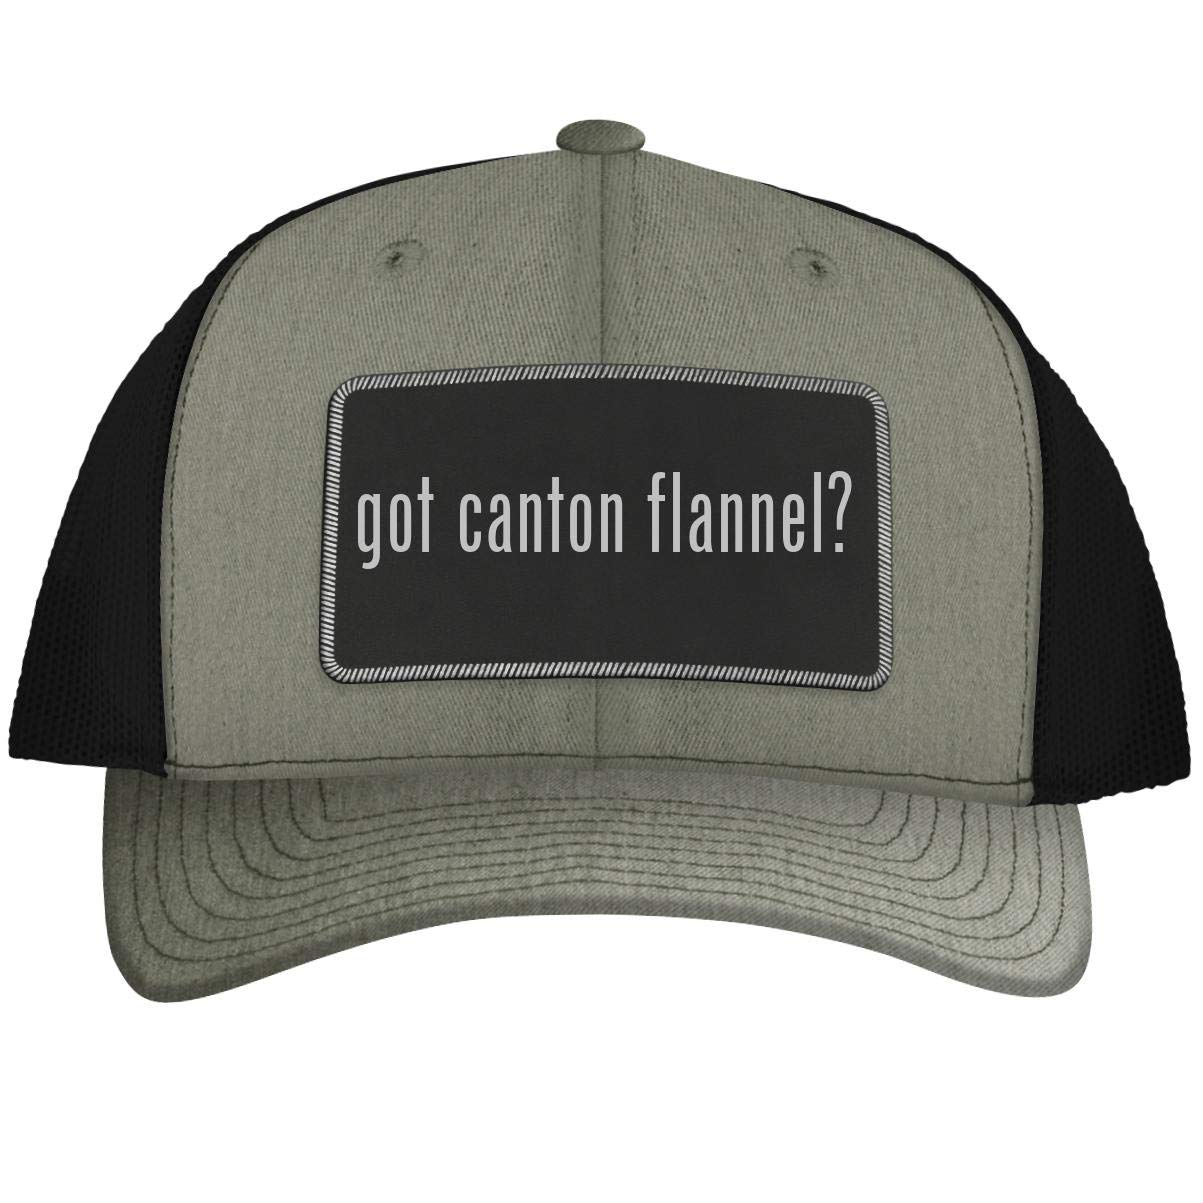 got Canton Flannel? - Leather Black Metallic Patch Engraved Trucker Hat, HeatherBlack, One Size by One Legging it Around